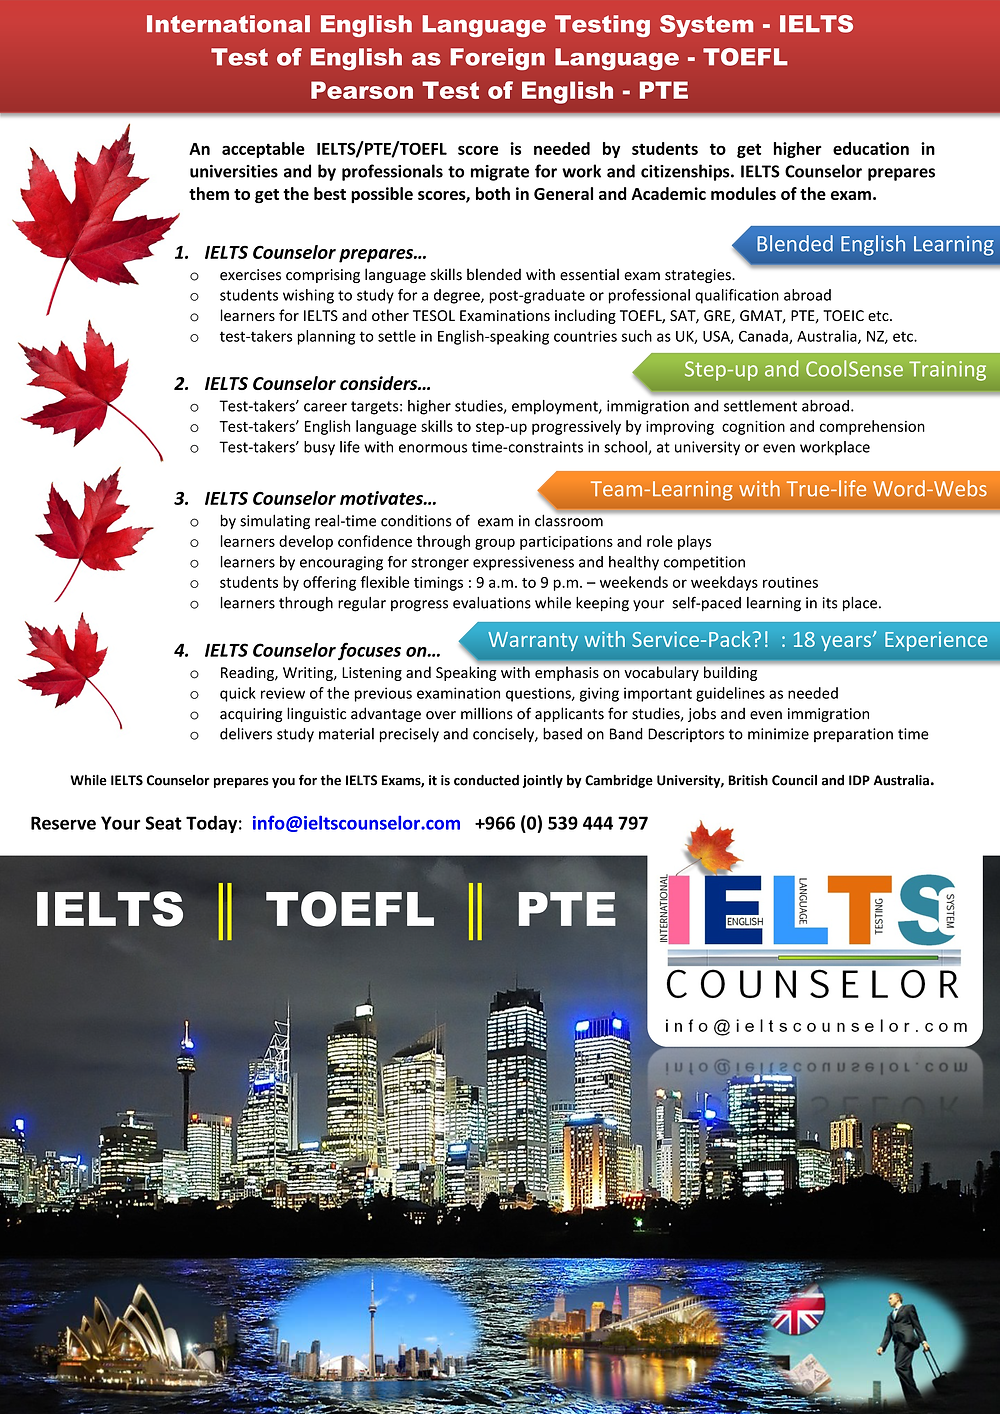 Coaching and guidance for IELTS, both offline and online.